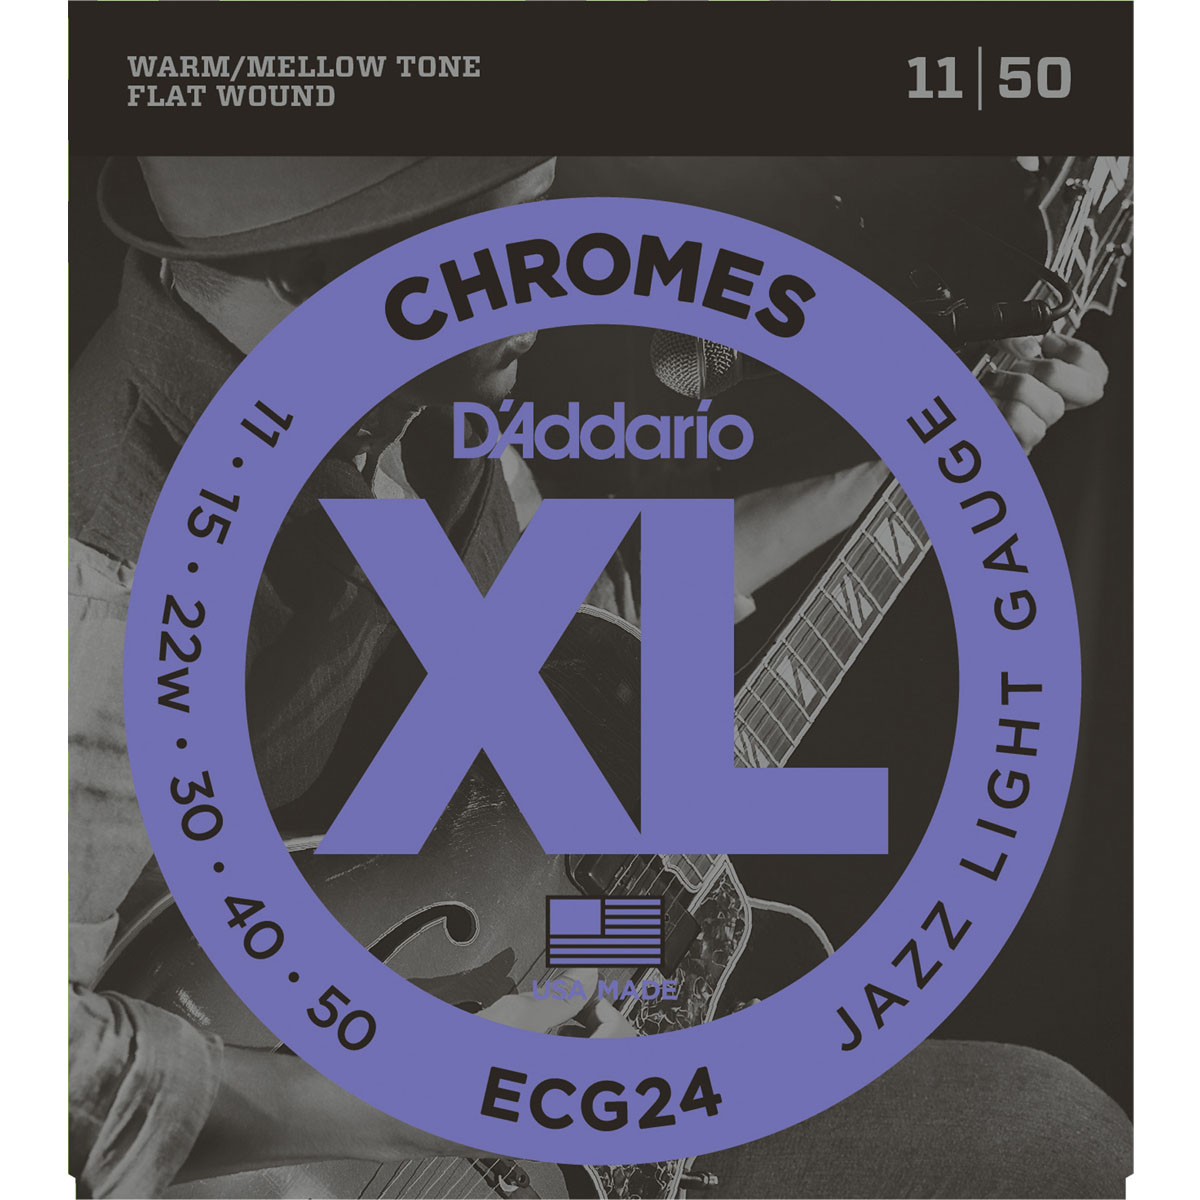 D'Addario Flatwound Guitar Strings 11-50